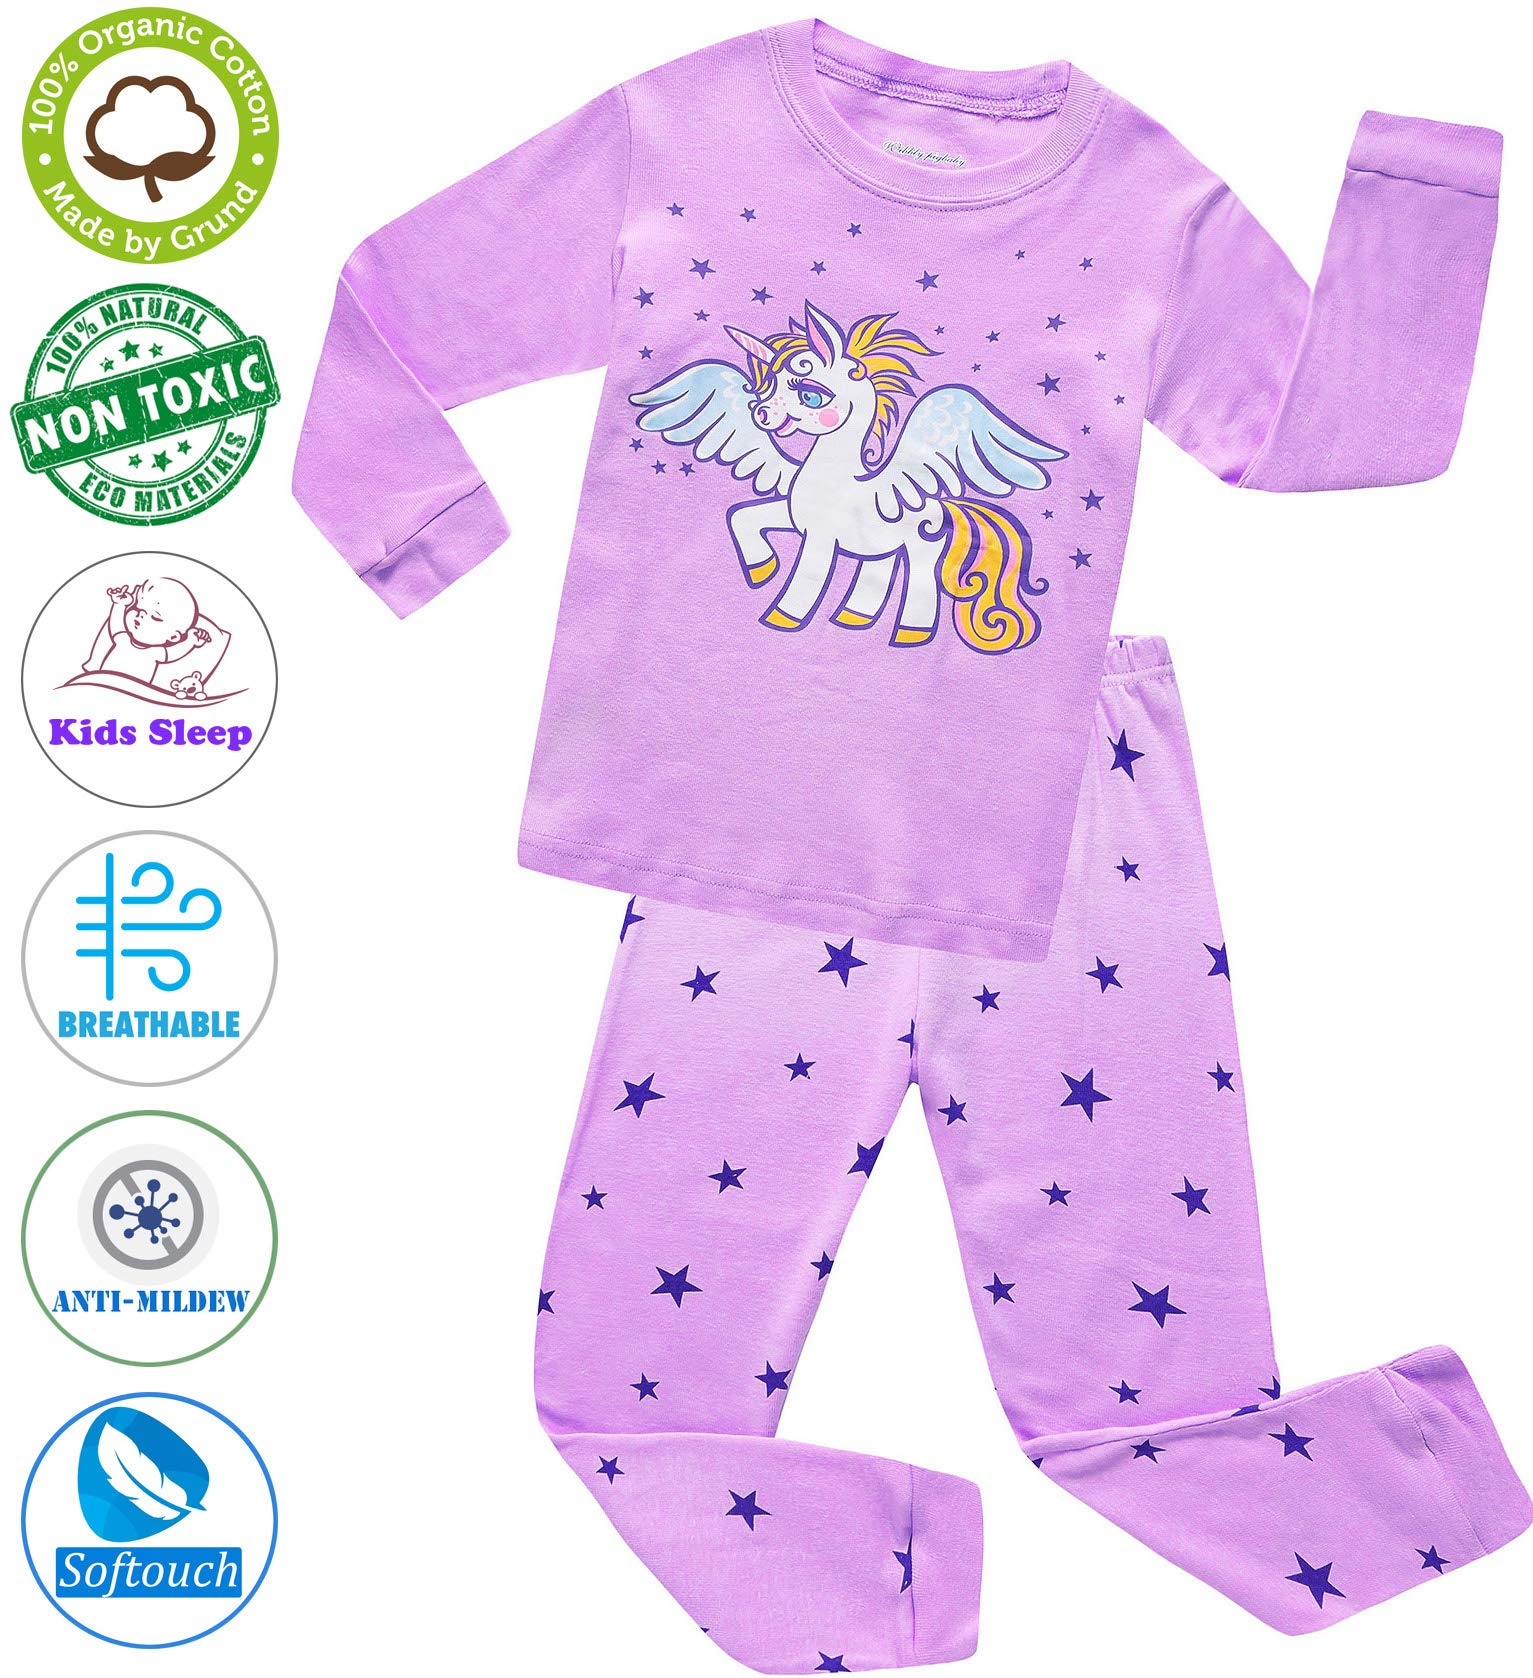 Girls Pajamas Clothes Sleepwear 100% Cotton PJS for Toddlers Children Kids Unicorn Style (Purple (Unicorn), 5)